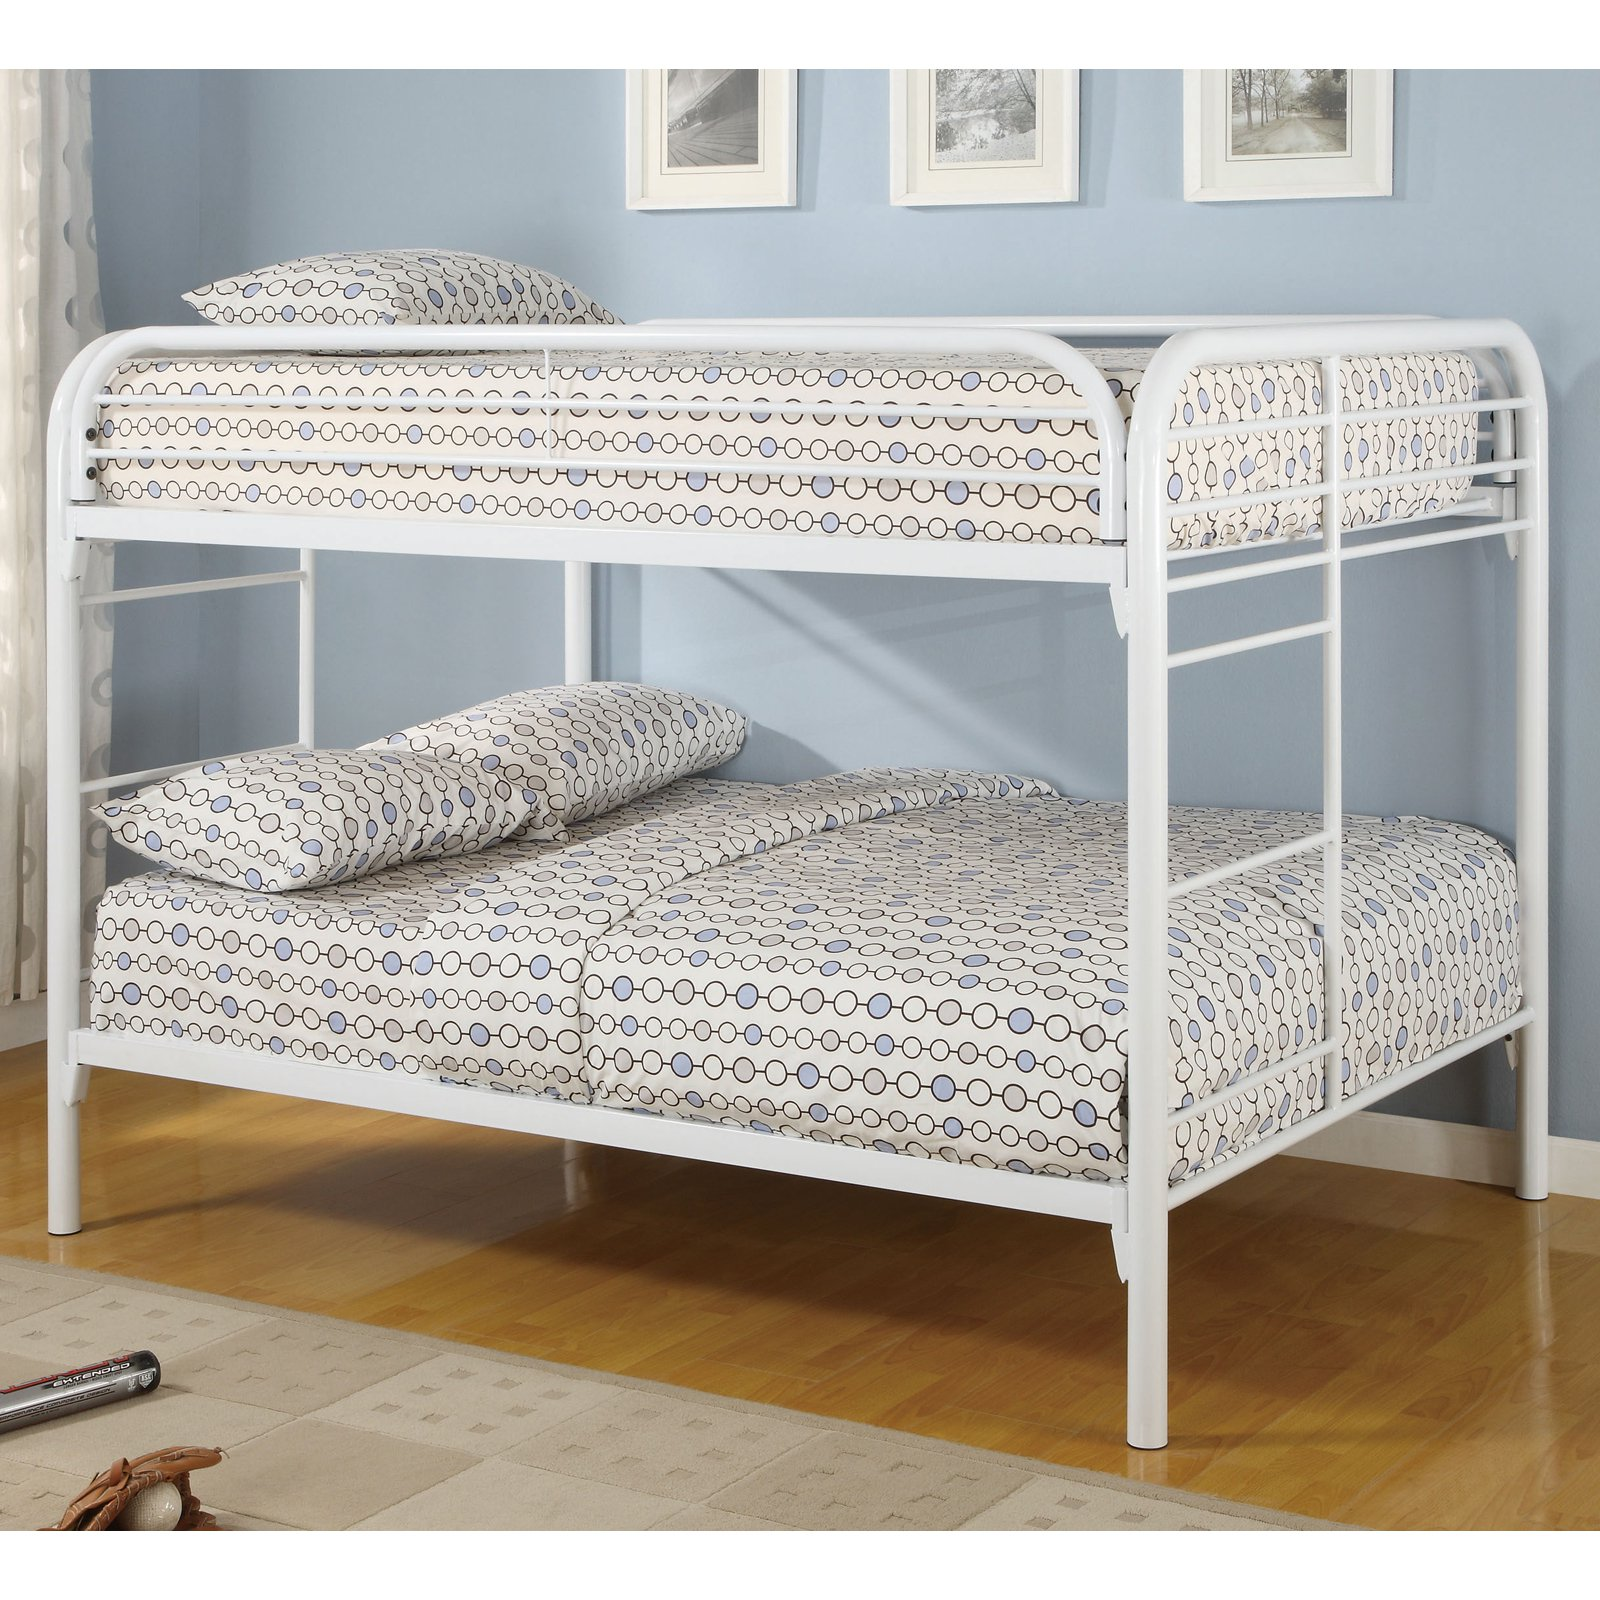 Coaster Full Over Full Metal Bunk Bed White Walmart Com